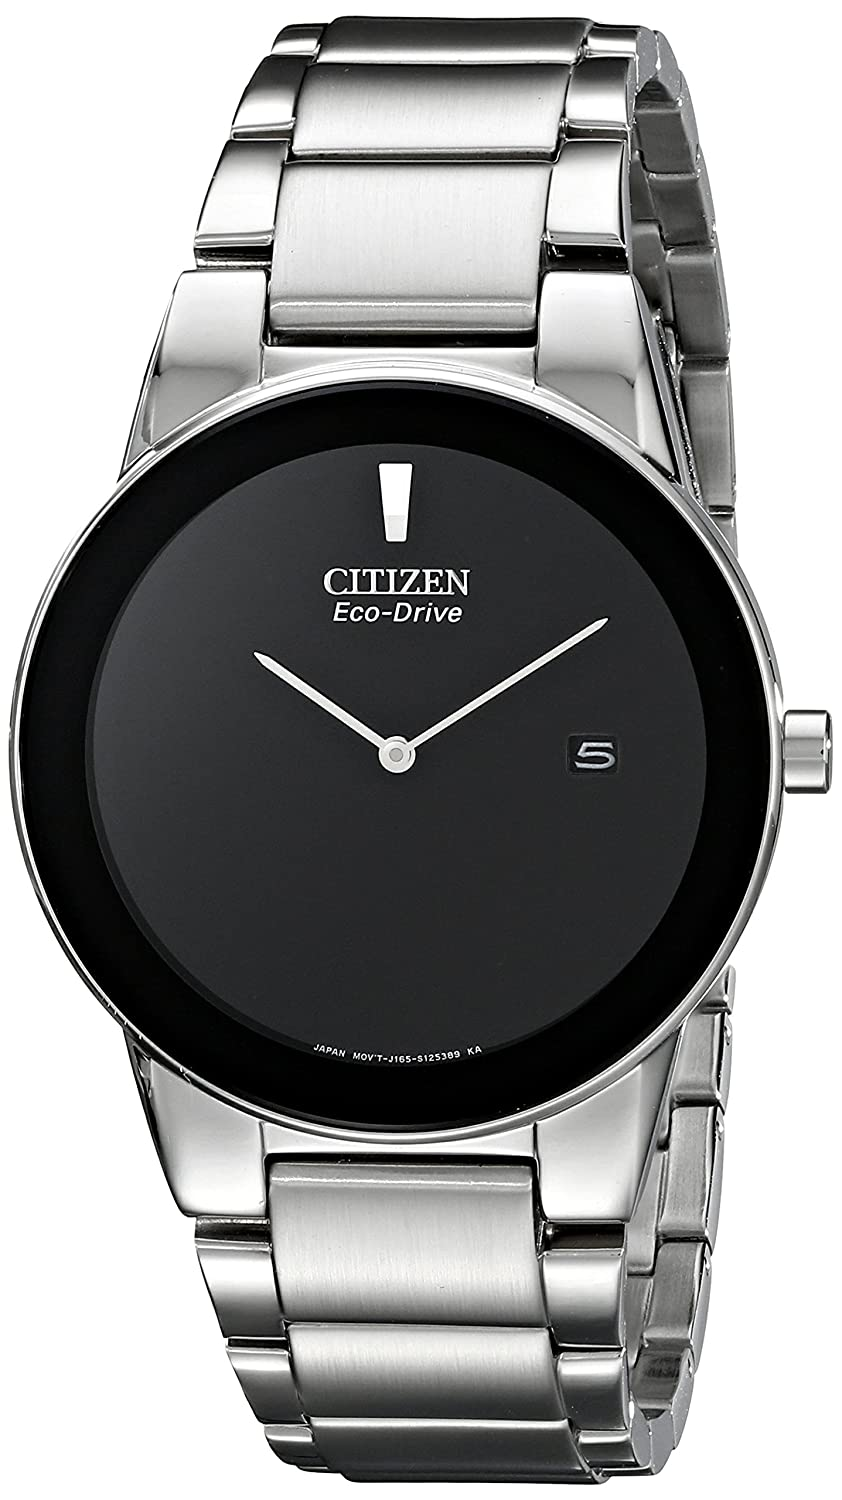 9671fedfc6519 Amazon.com  Citizen Men s Eco-Drive Axiom Stainless Steel Watch ...